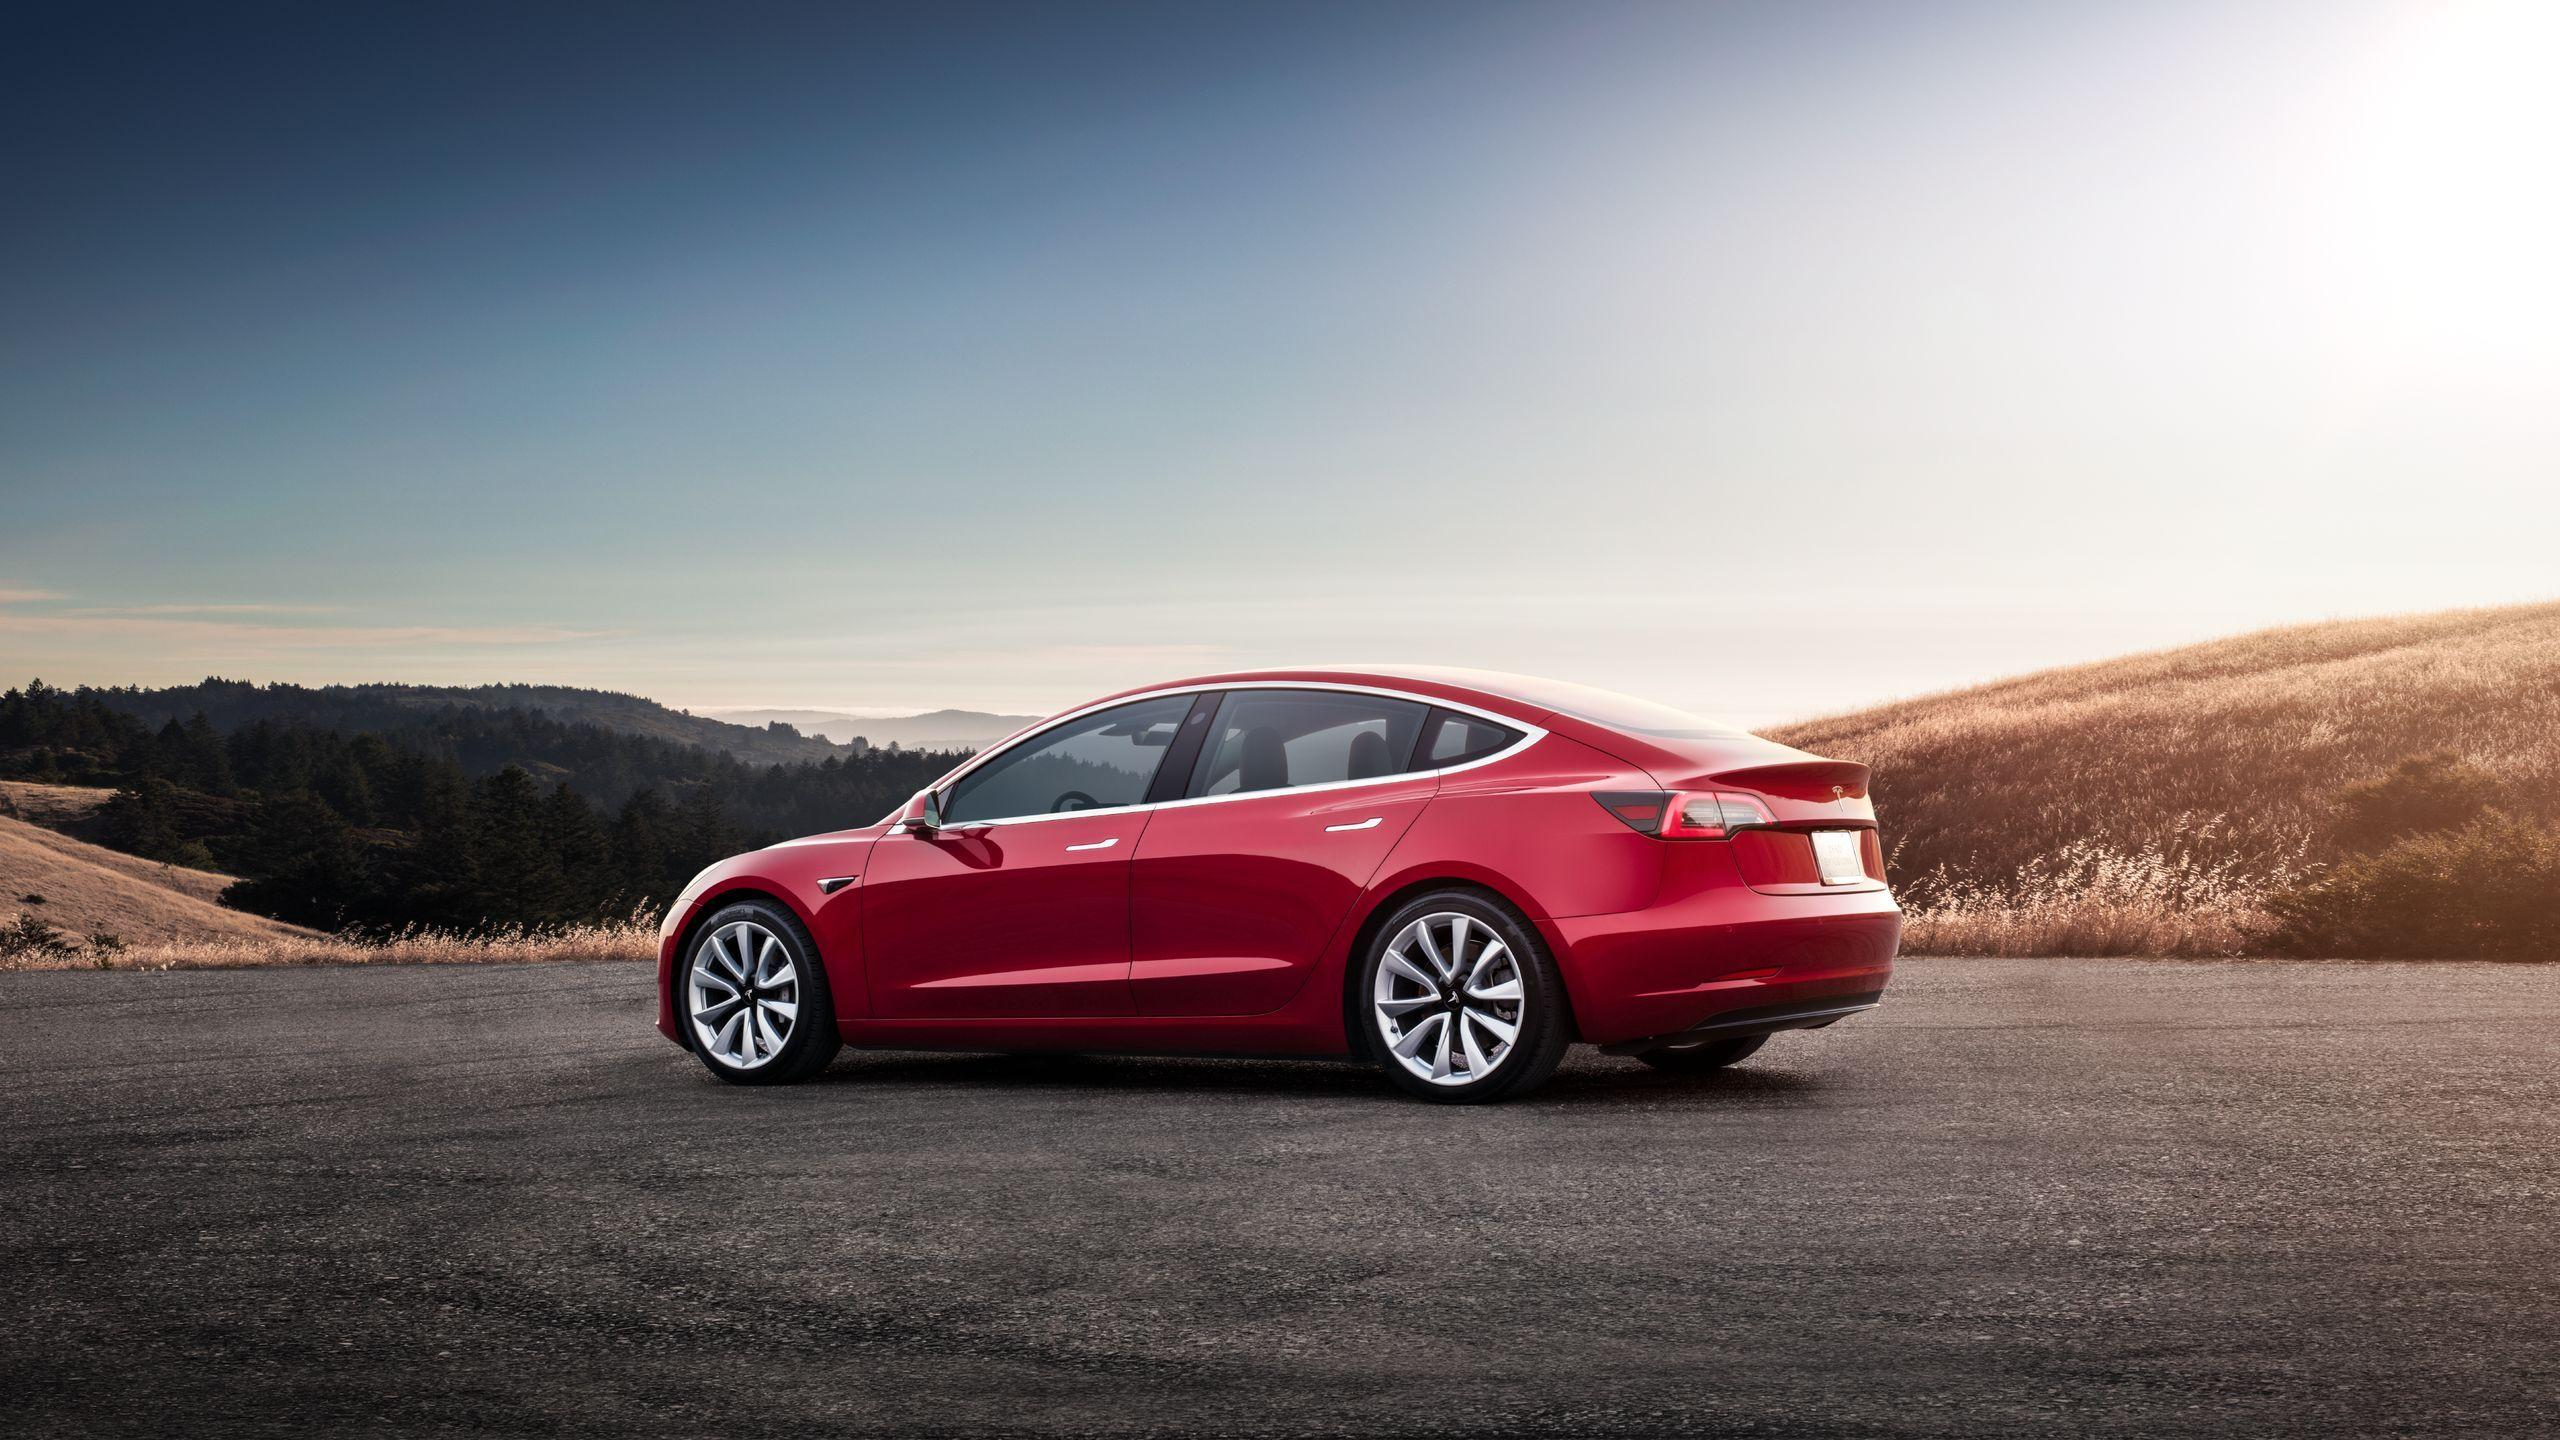 Wallpapers Wednesday: Featuring The Tesla Model S, X And 3